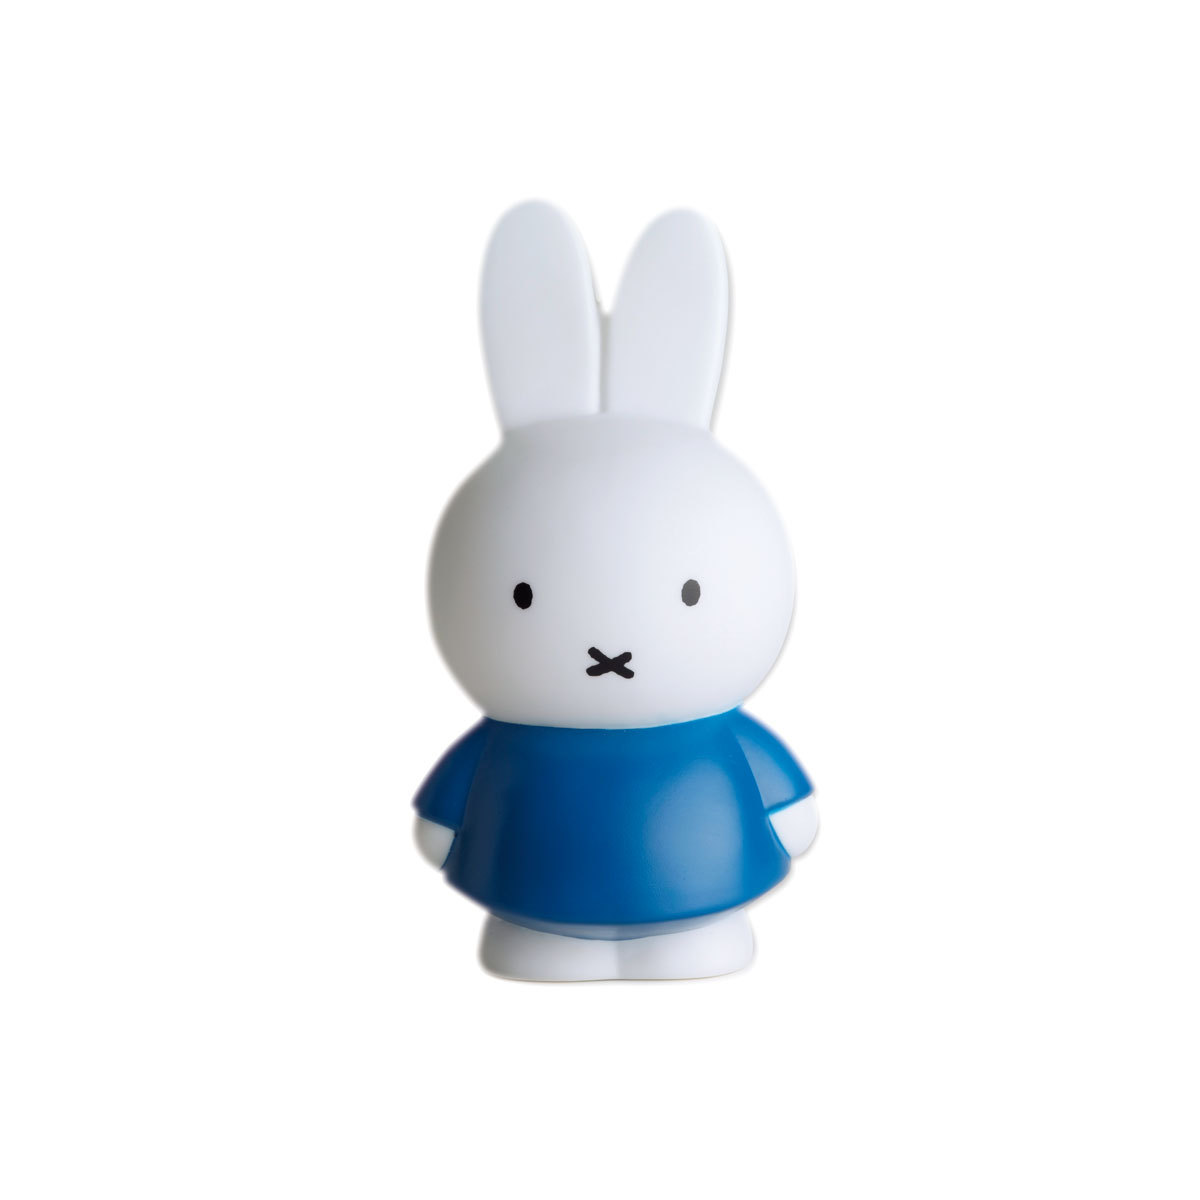 Tirelire Tirelire Miffy - Bleu Tirelire Miffy - Bleu